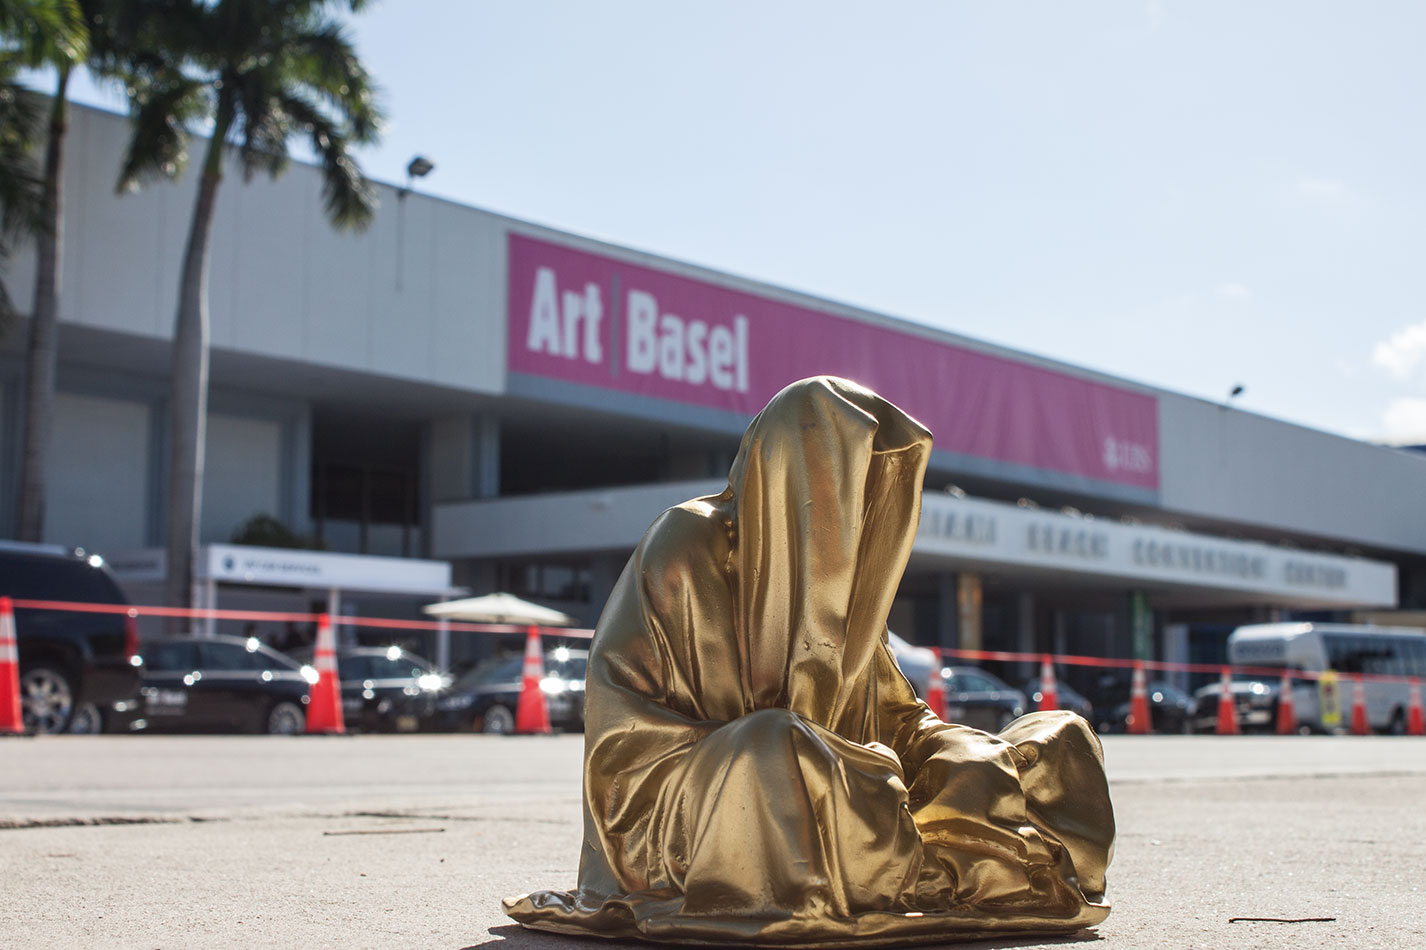 public-art-basel-miami-beach-fair-usa-florida-bass-museum-guardians-of-time-manfred-kili-kielnhofer-contemporary-fine-art-modern-arts-design-antiques-sculpture-6470